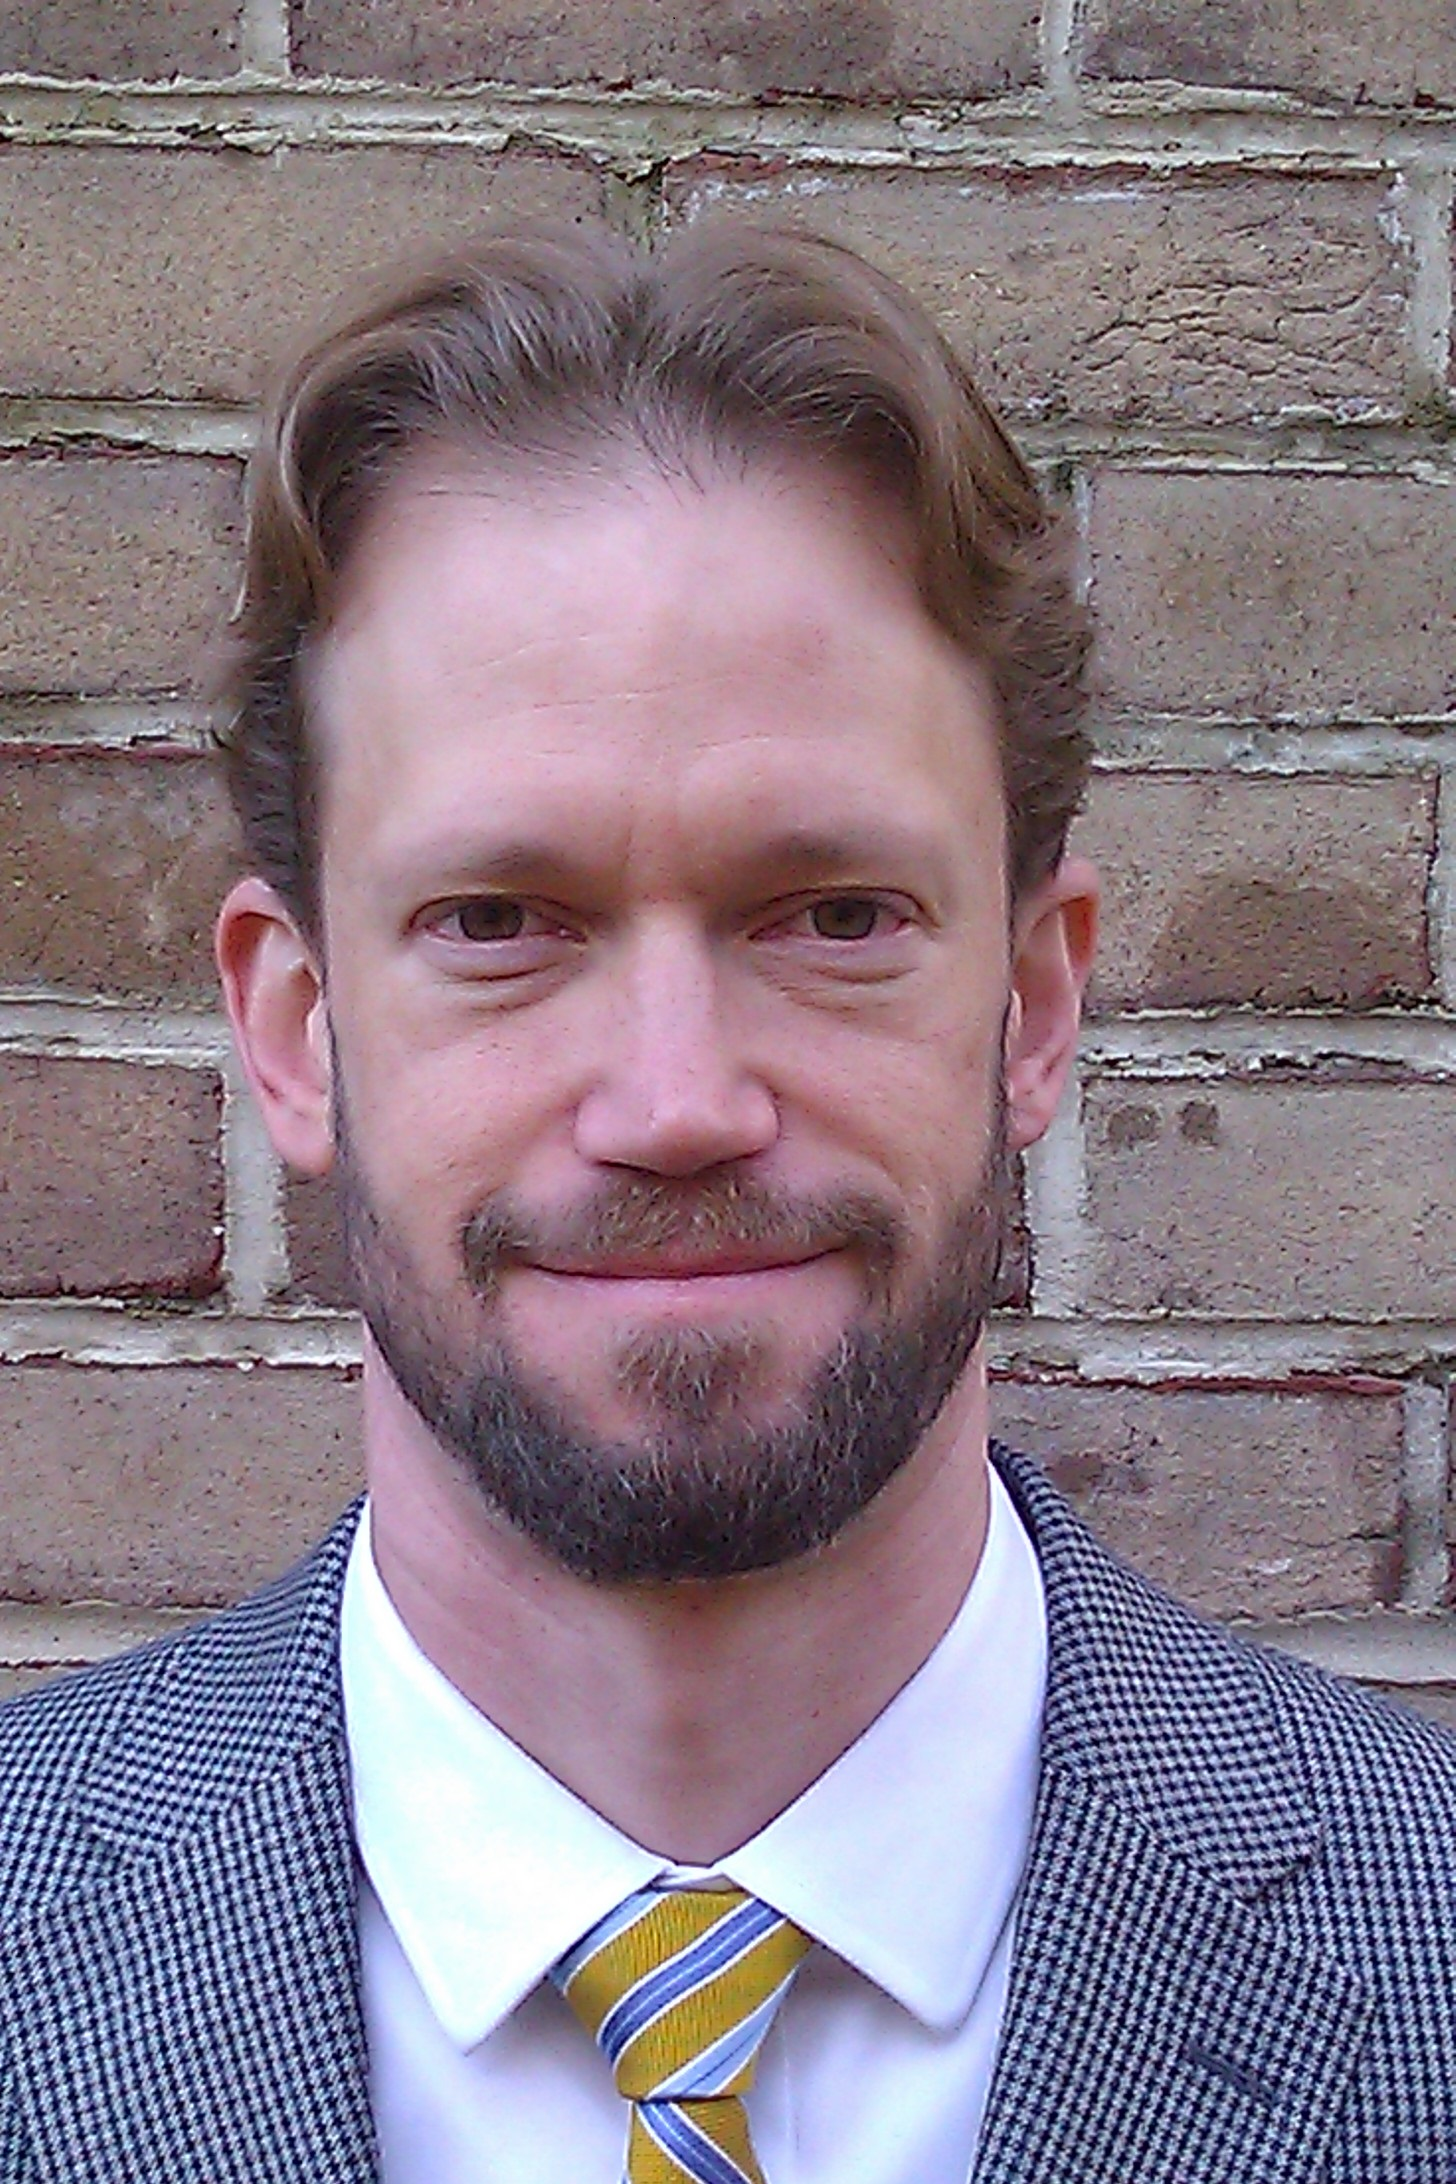 Ben R By Darren Black: Benjamin R. Phillips, Lead For NASA's Earth Surface And